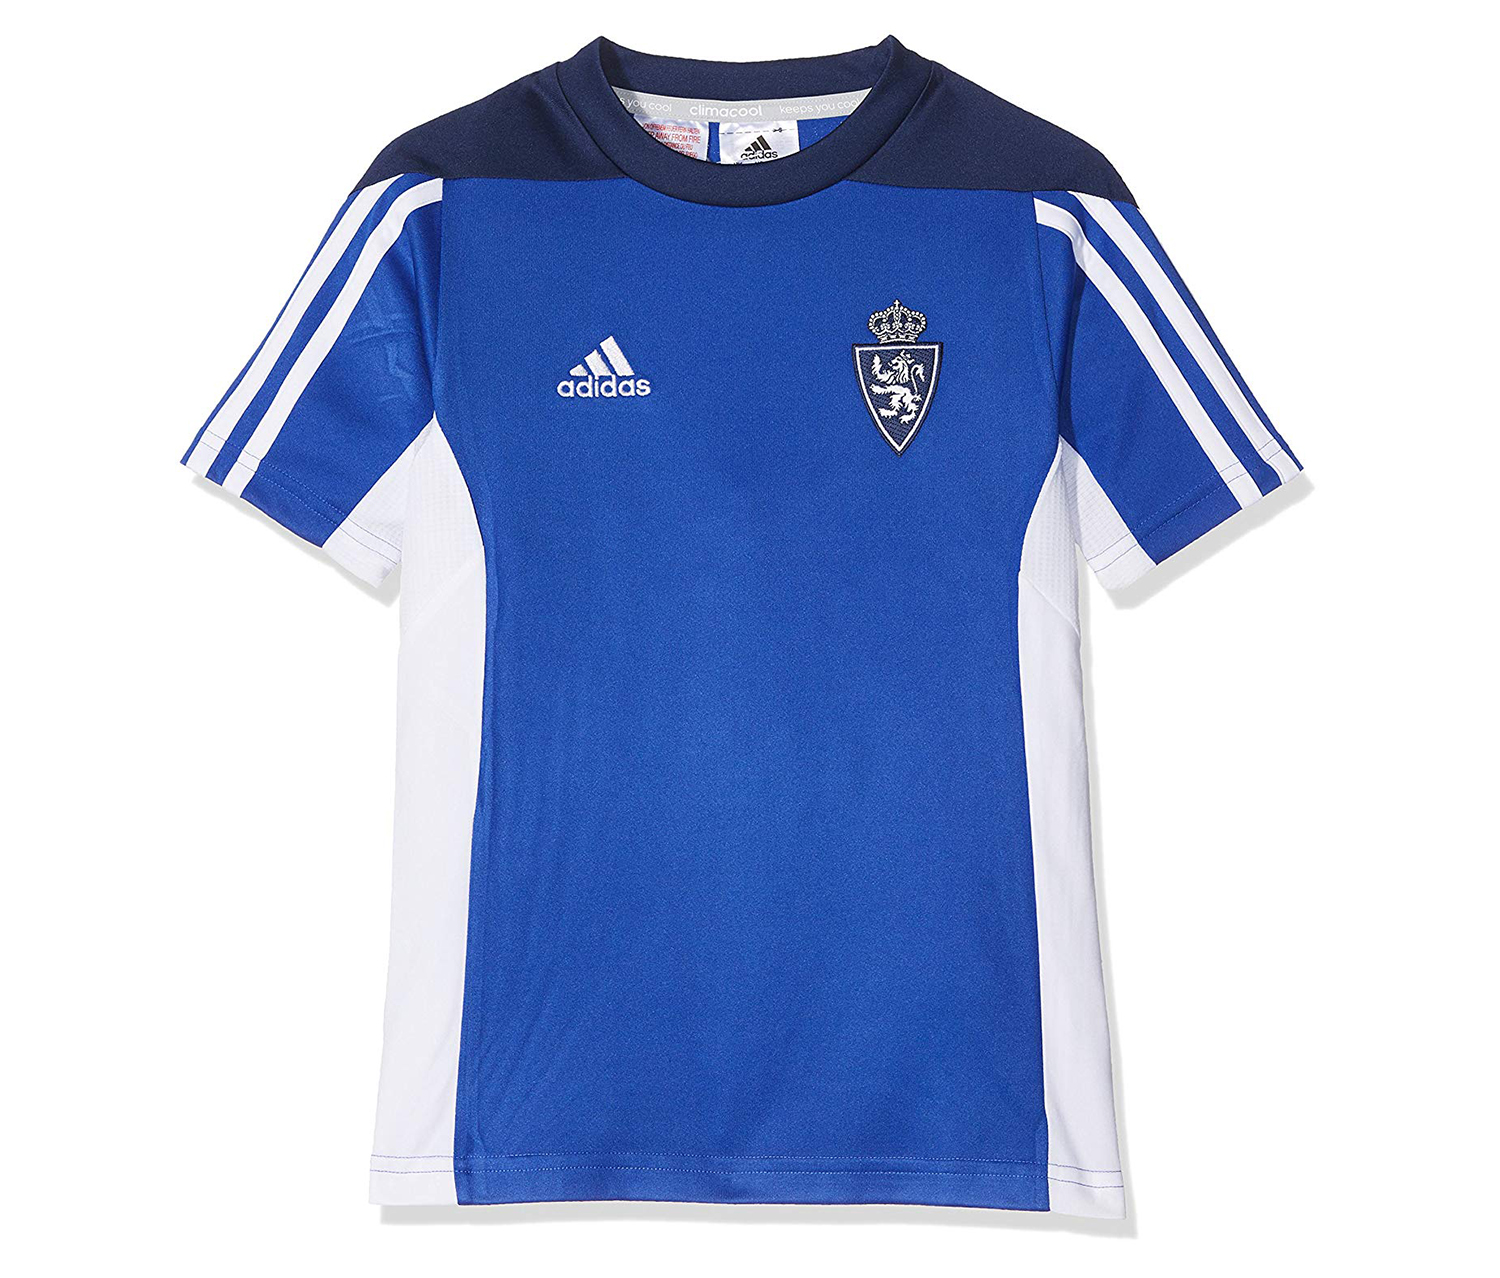 Adidas Boy's Sport T-Shirt, Blue/White